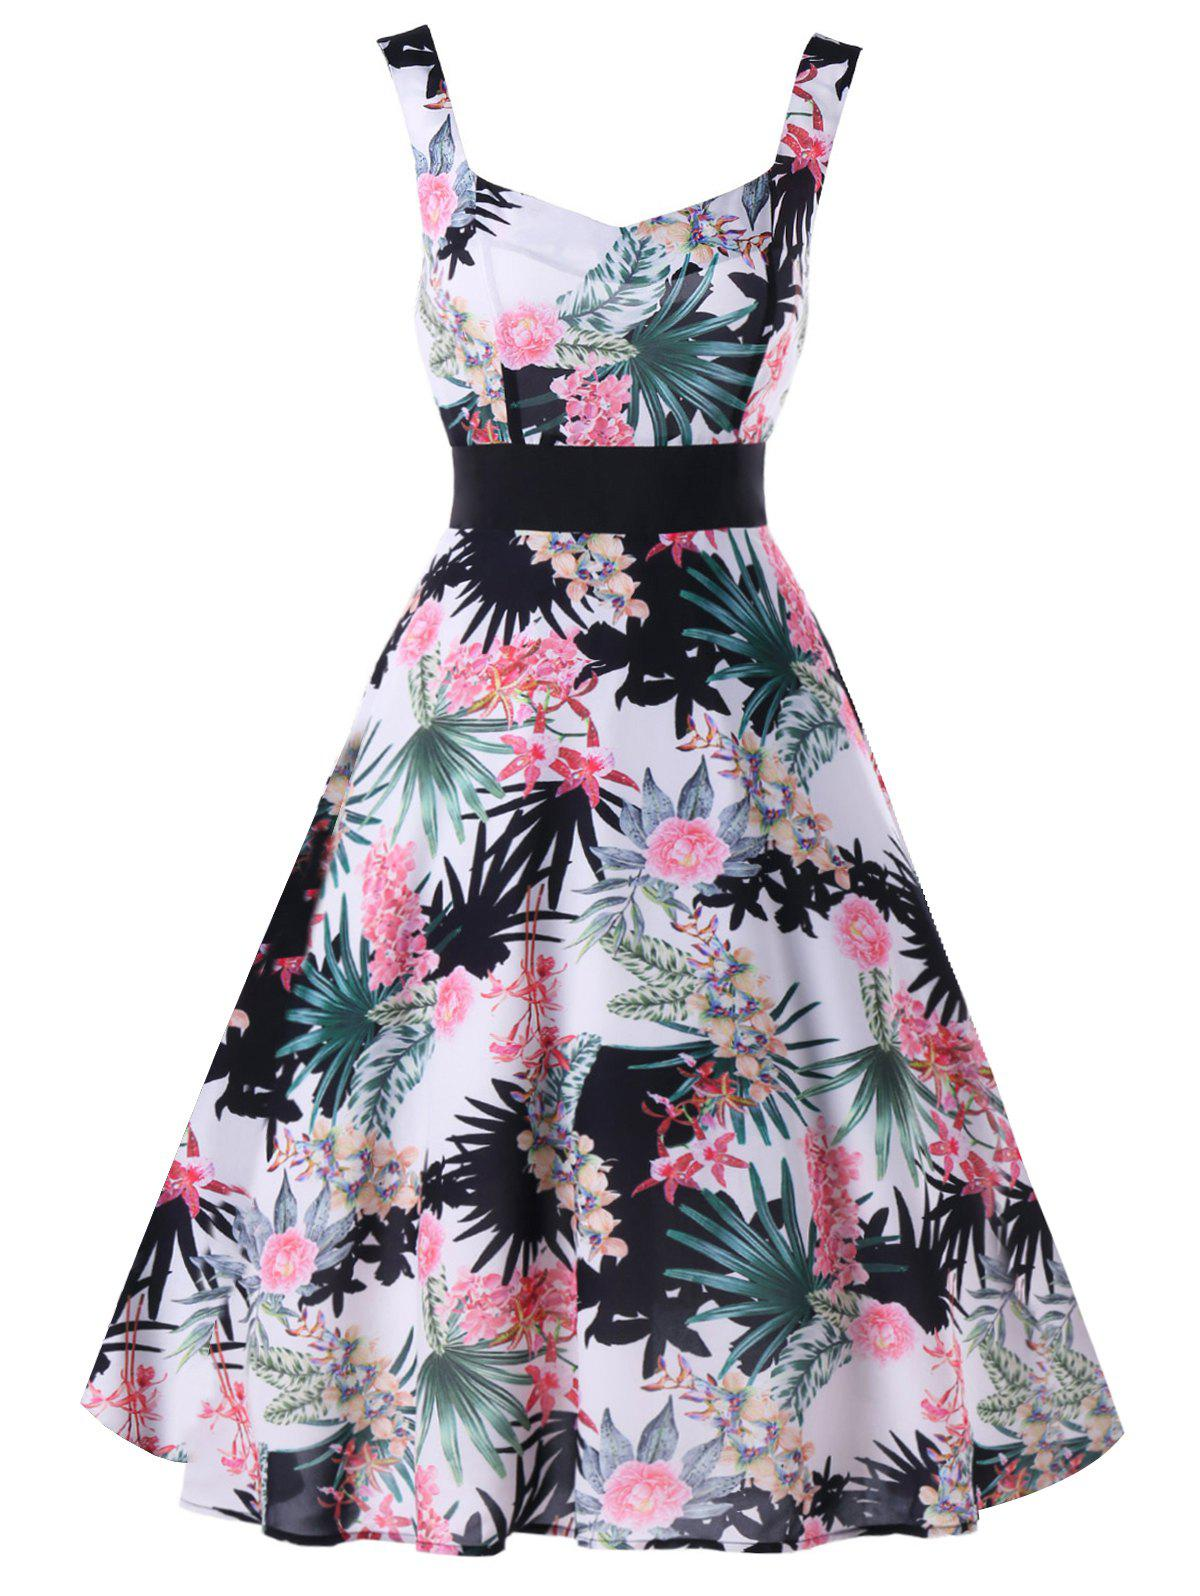 Floral Leaf Printed Sleeveless Flare Dress sleeveless floral leaf printed vintage dress